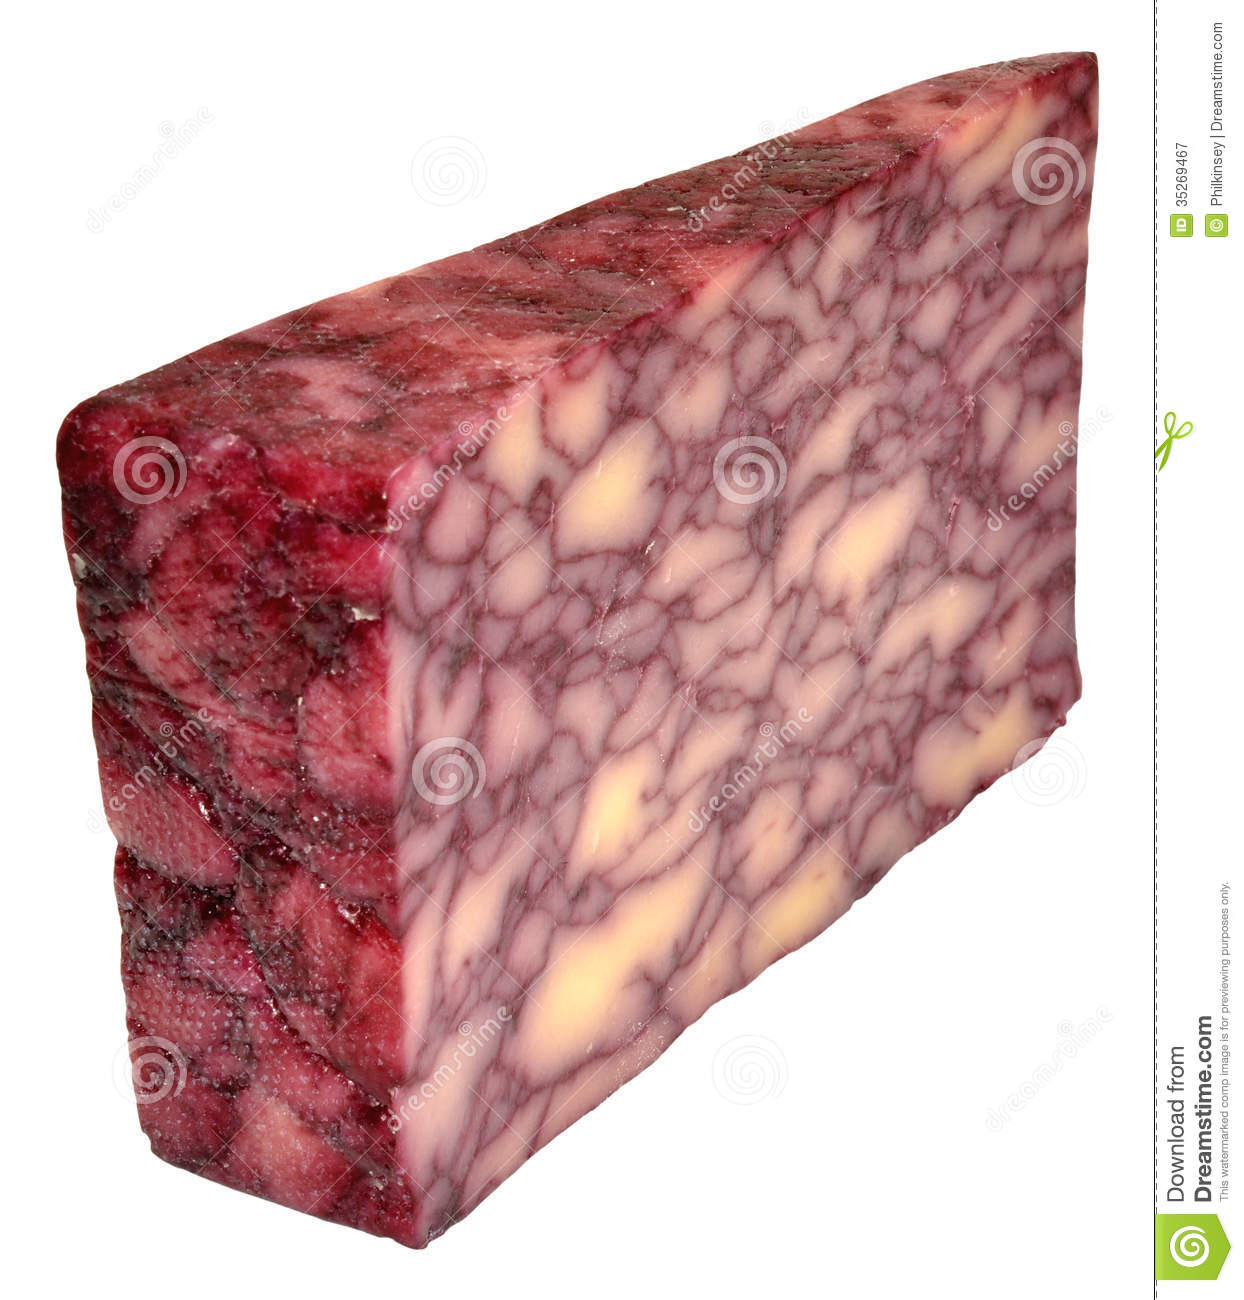 Port Wine Cheese Stock Photos, Images, & Pictures.